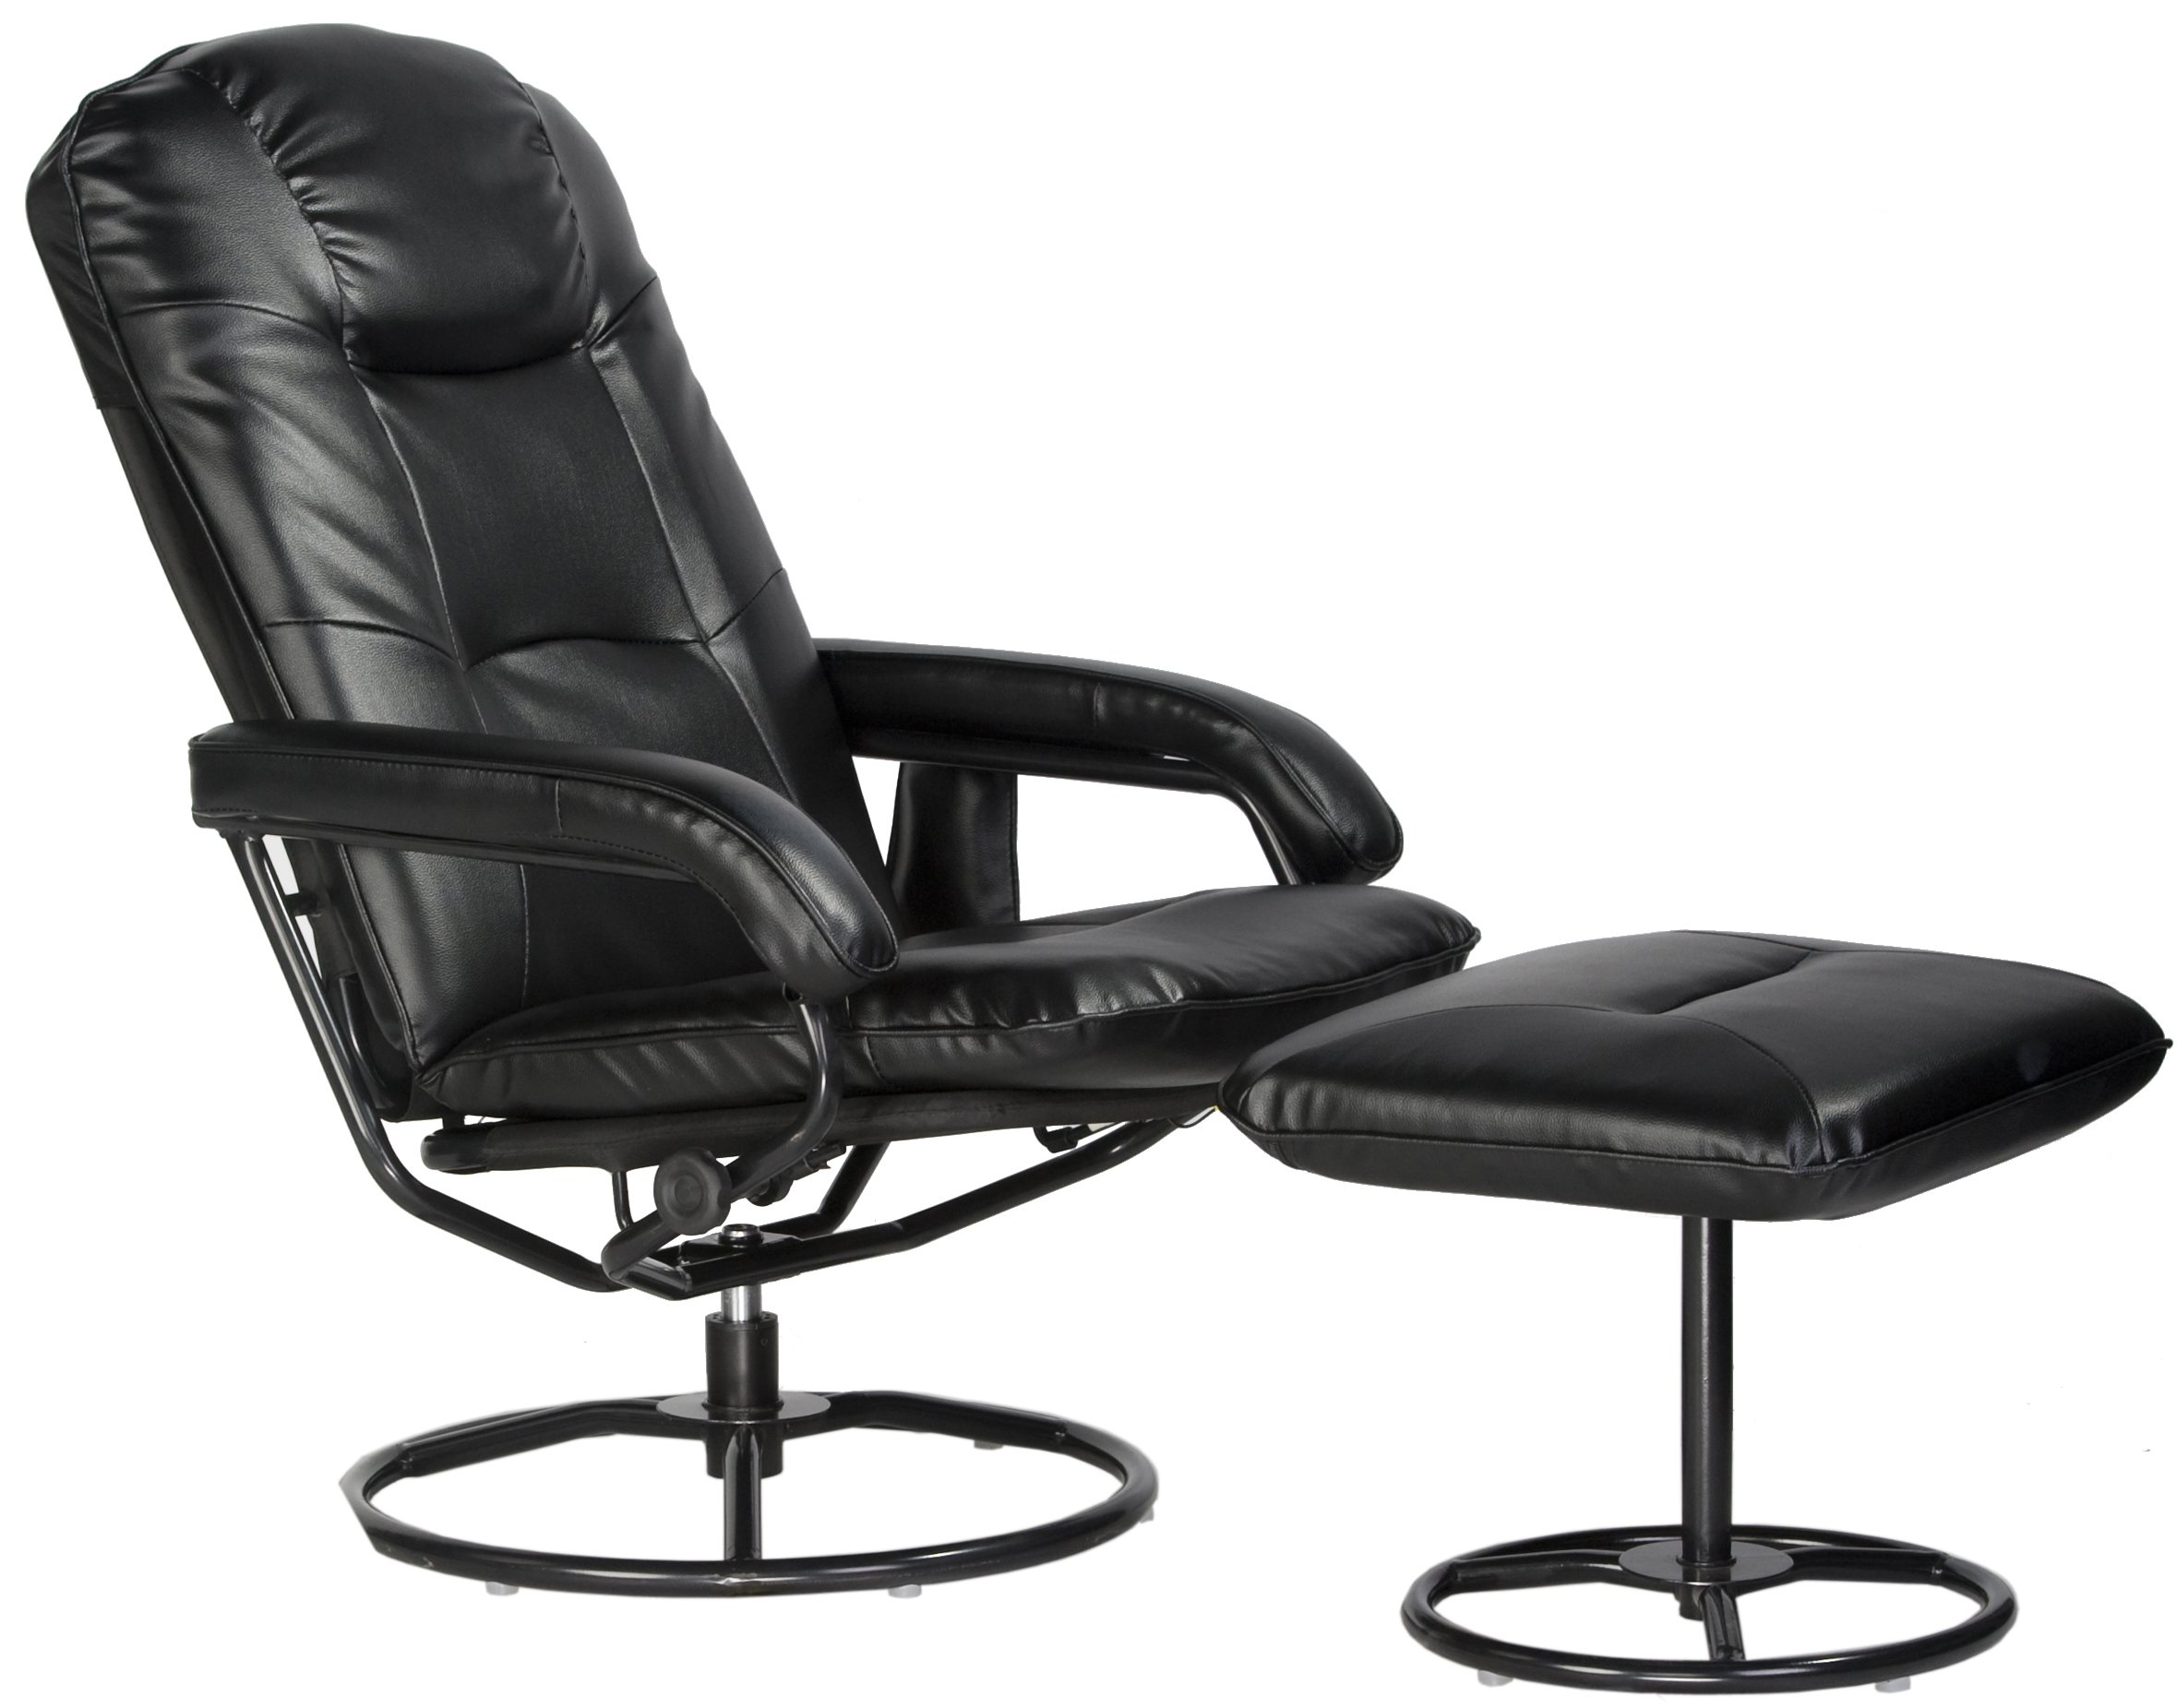 Best Massage Chair reviews - Comfort Products 60-0582 Leisure Recliner Chair